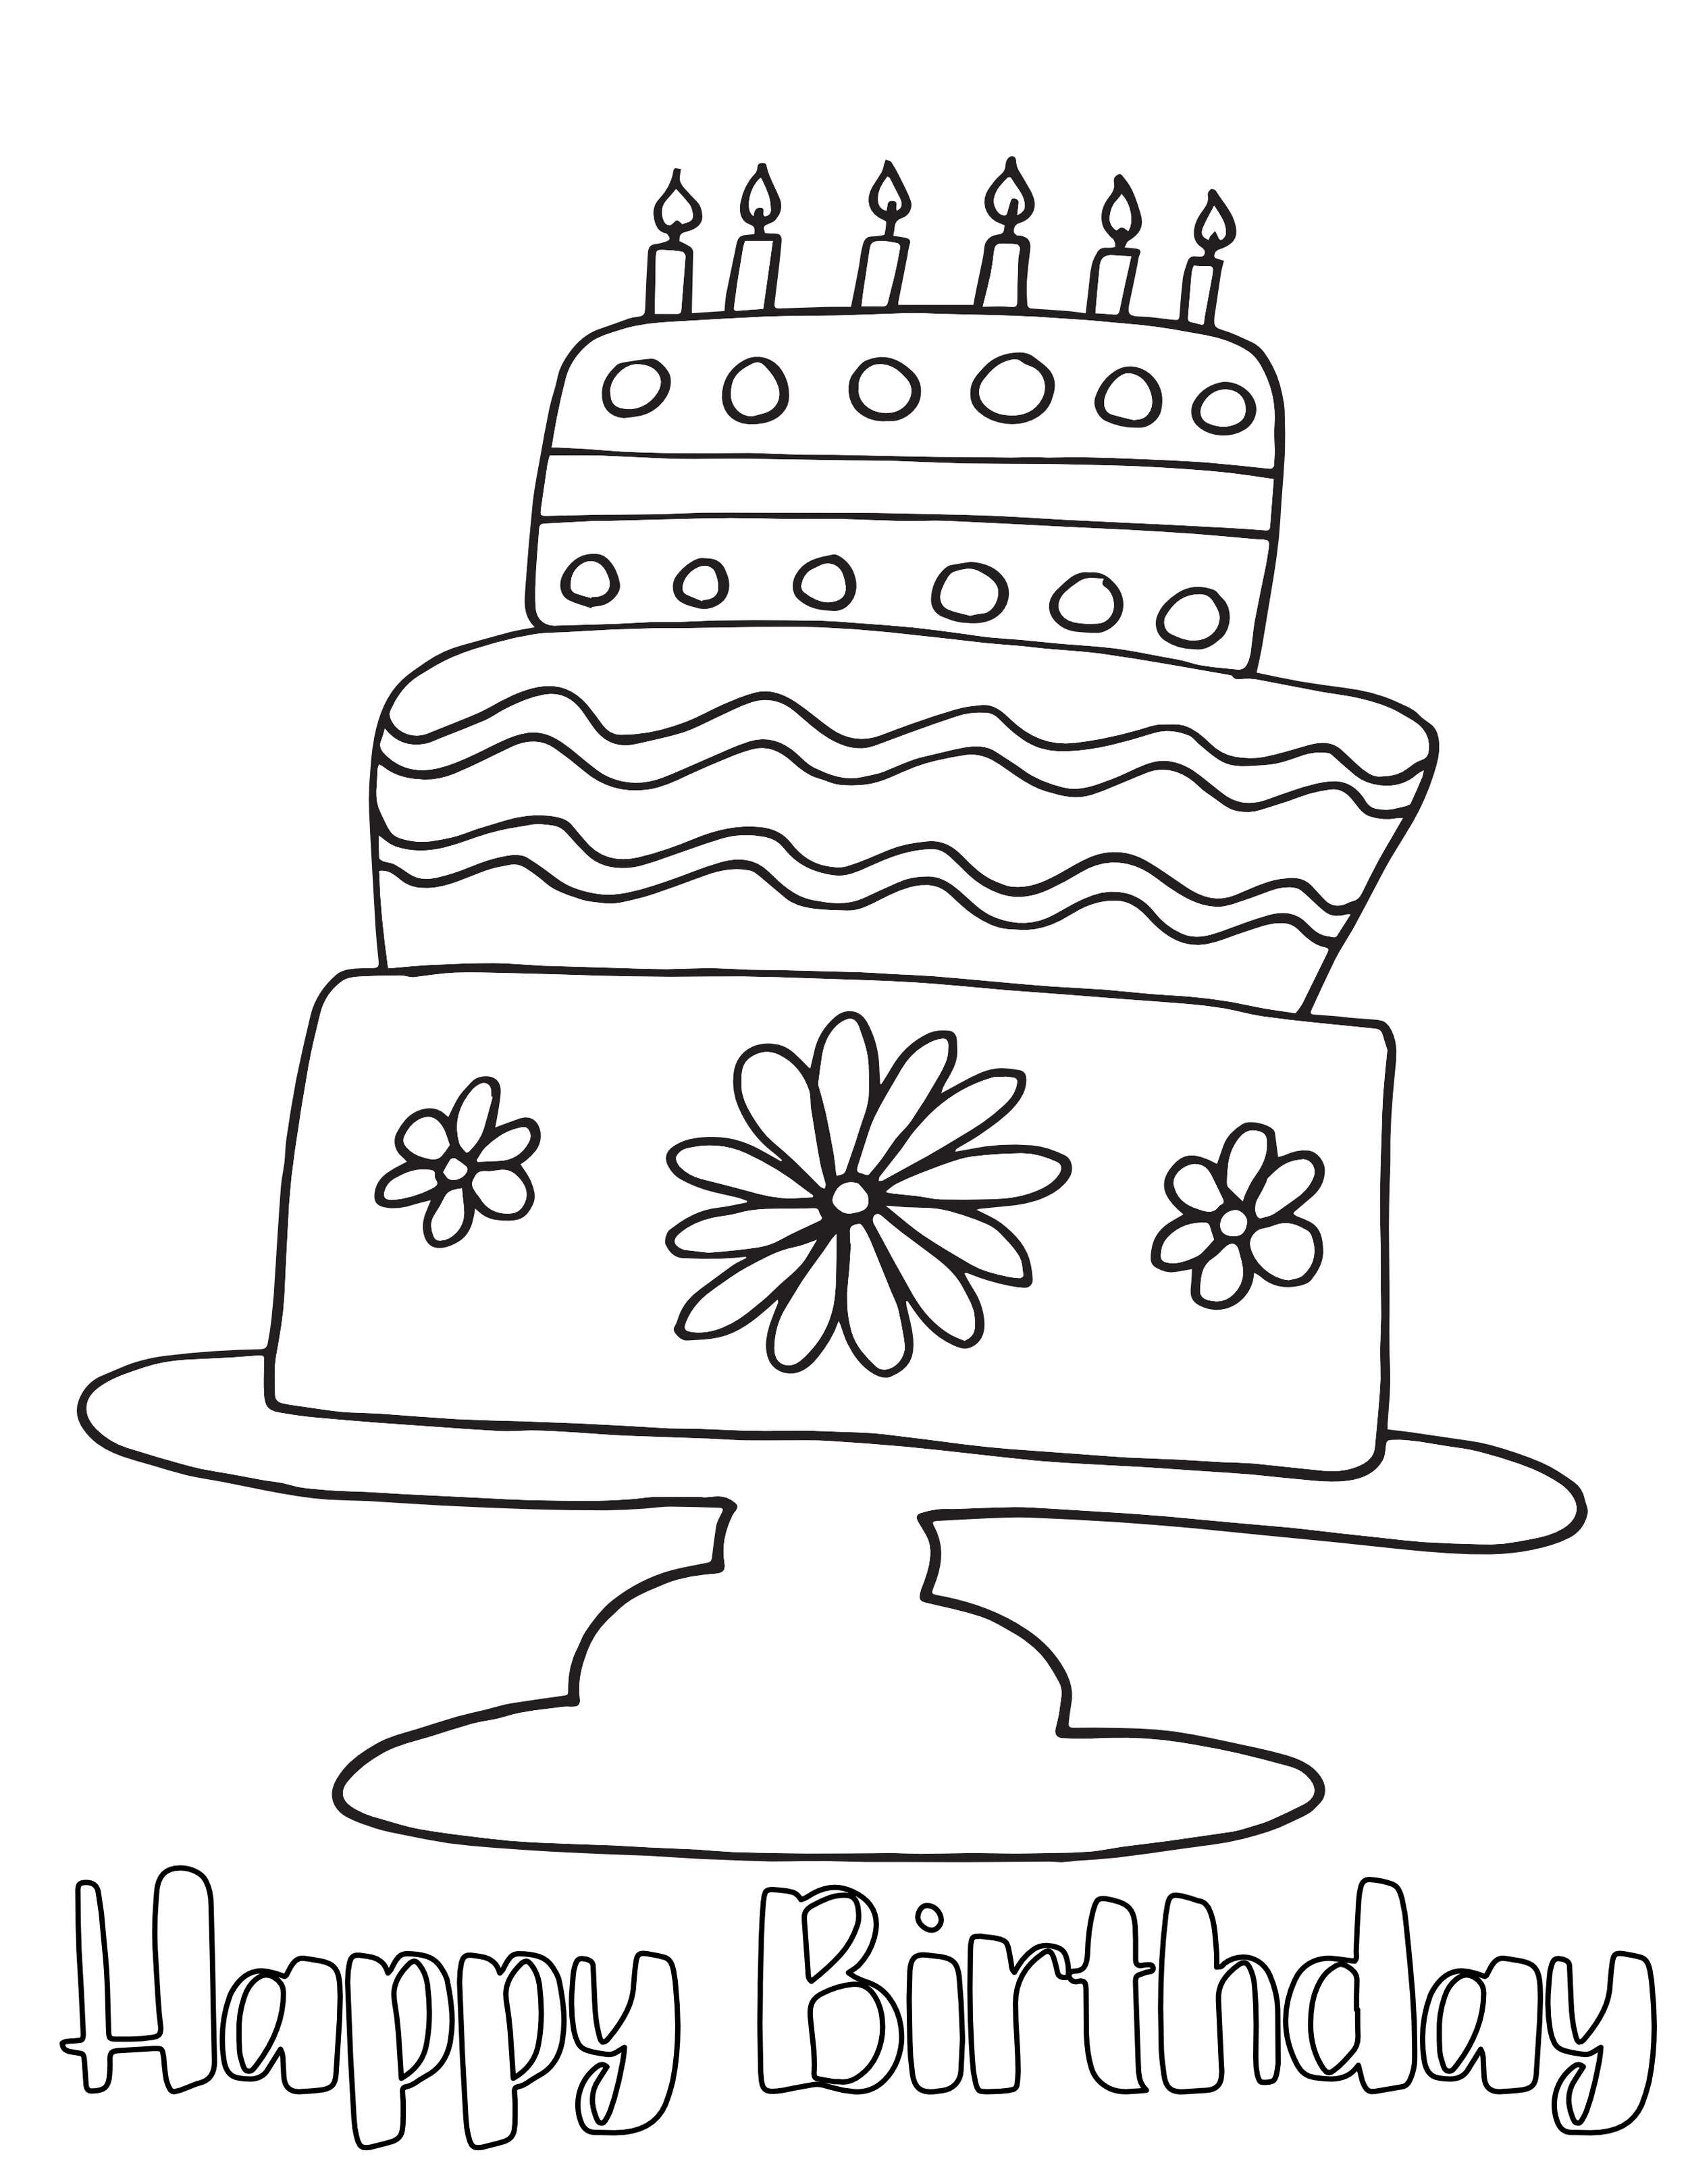 Happy Birthday Cake Free Coloring Page Stevie Doodles Free Printable Coloring Pages